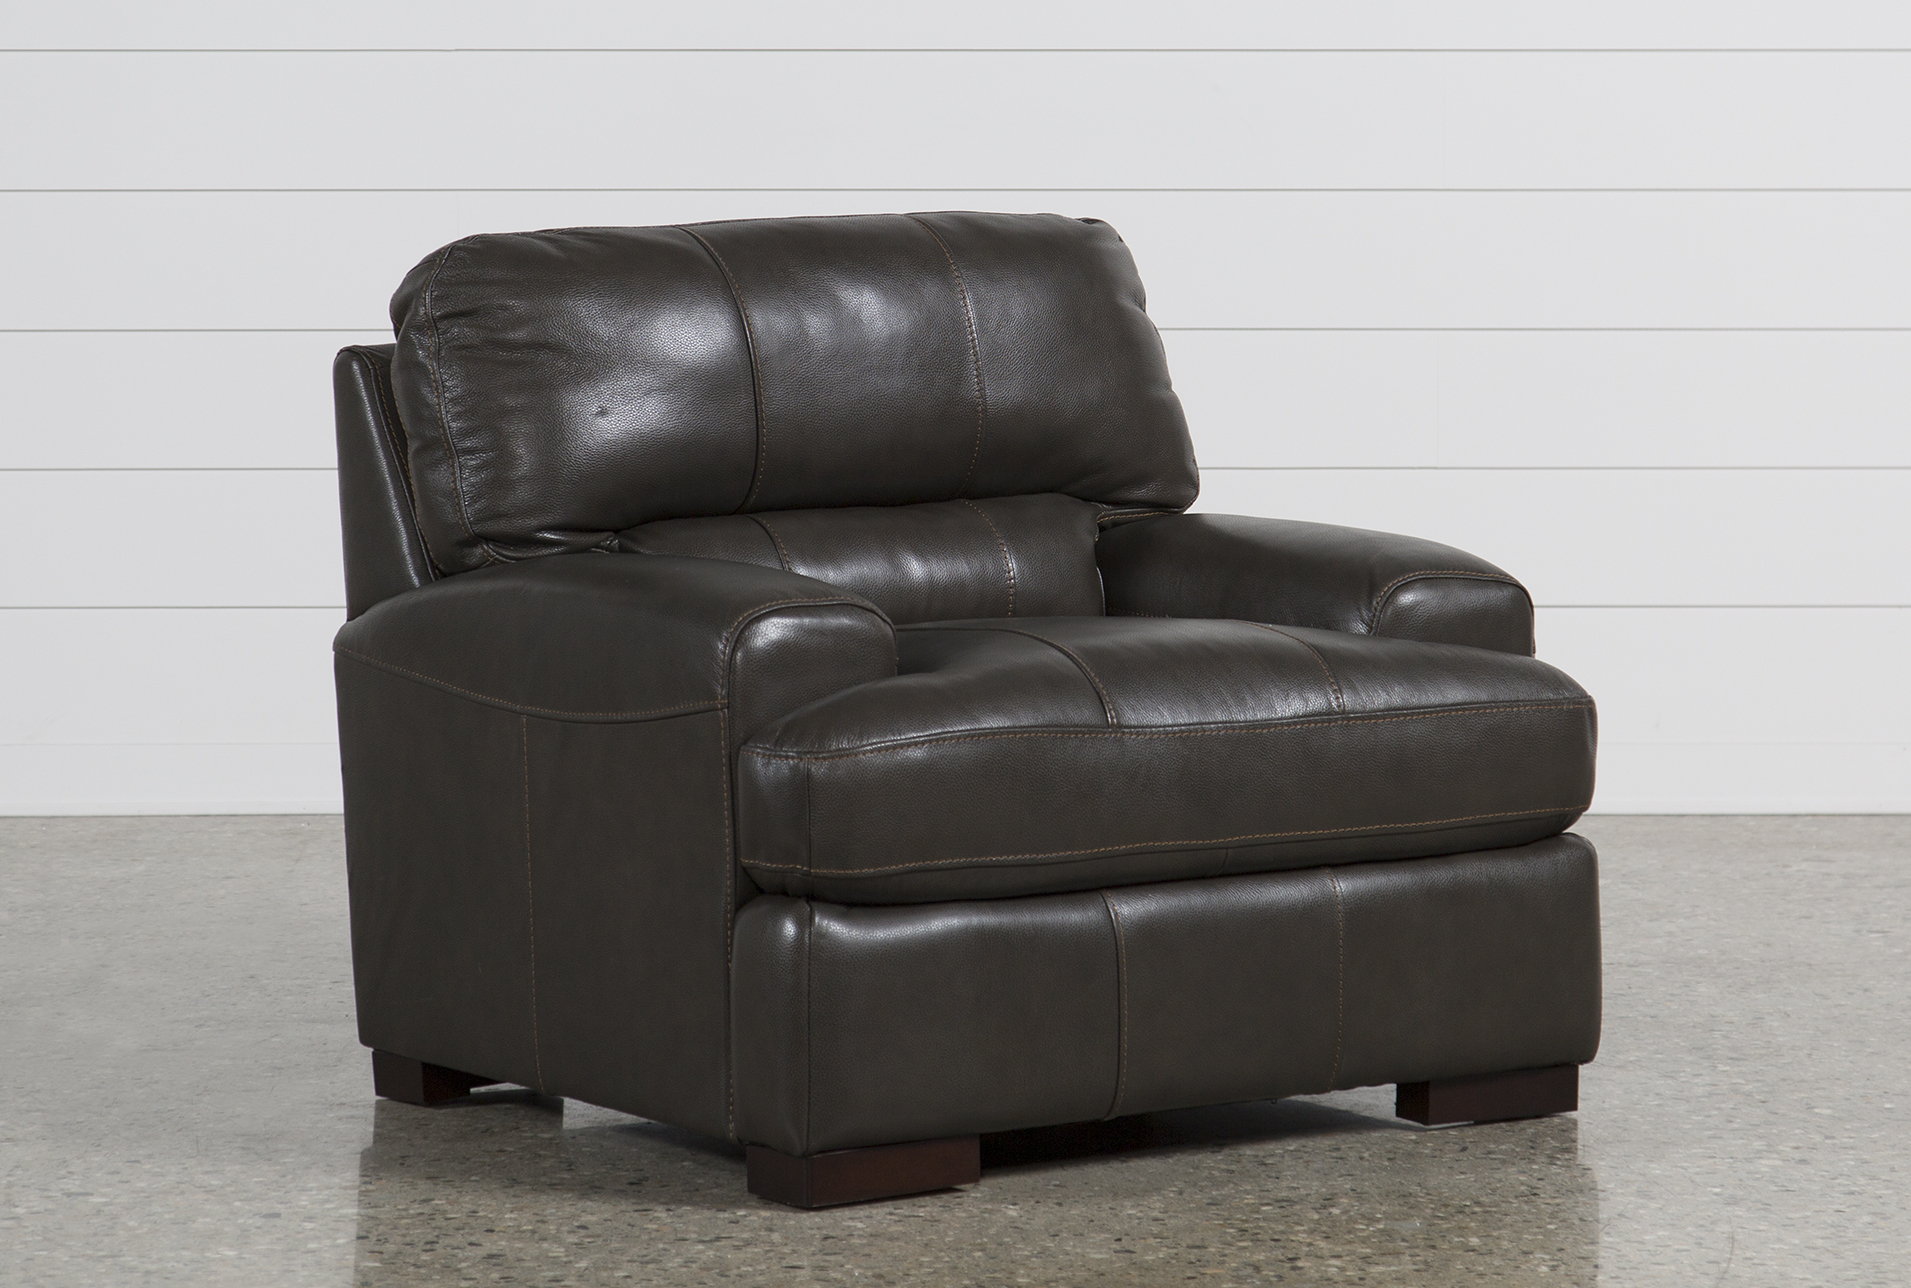 Ordinaire Andrew Leather Chair (Qty: 1) Has Been Successfully Added To Your Cart.